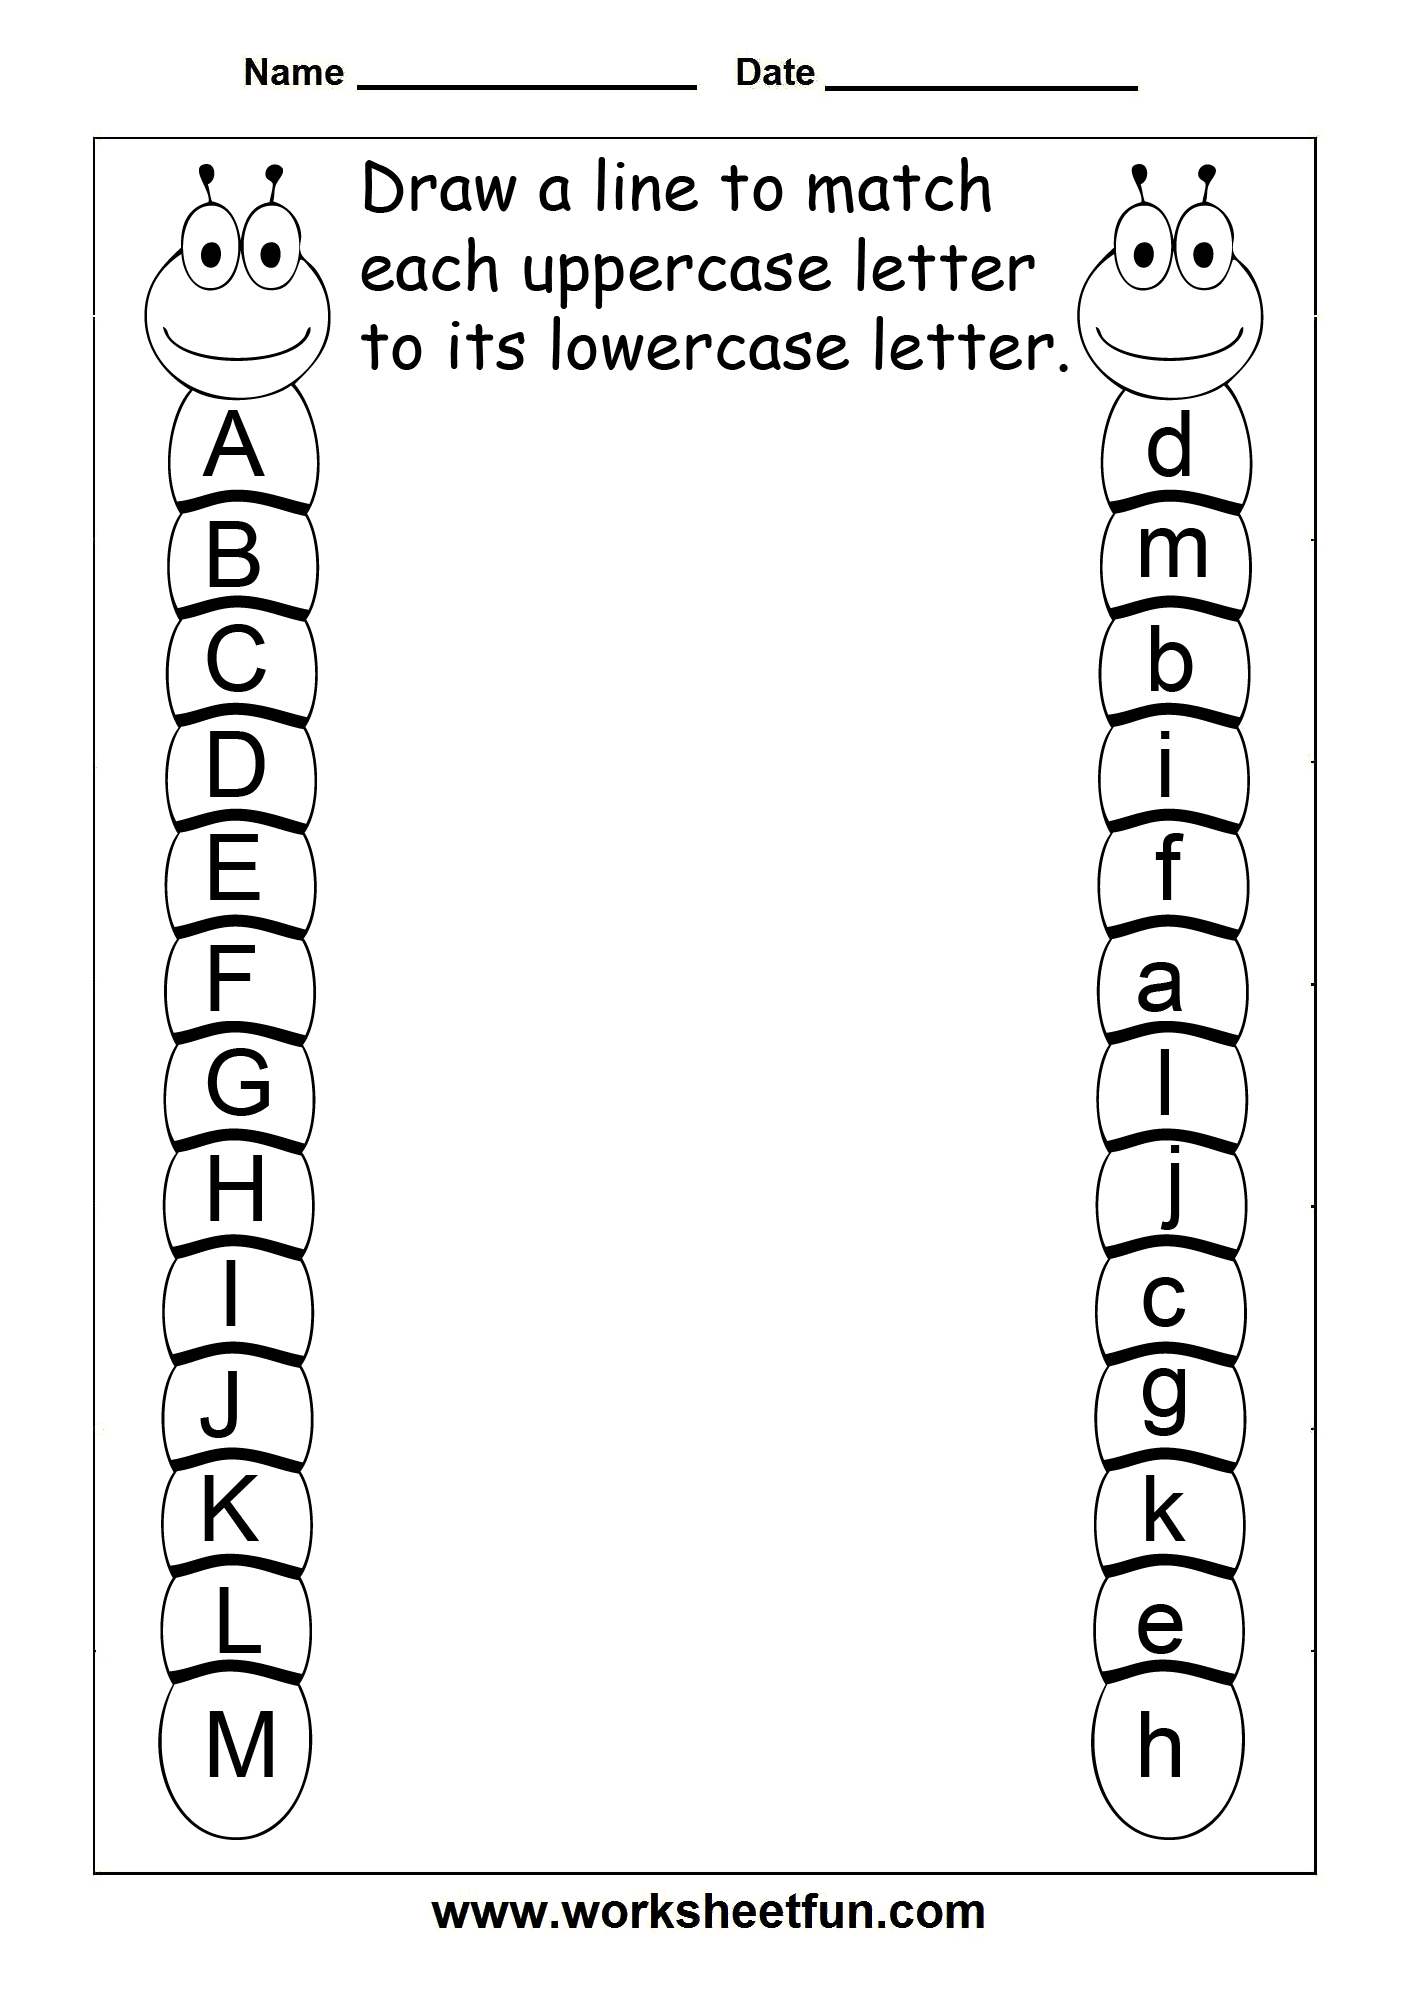 Worksheets Alphabet Worksheet For Kg Free kindergarten abc worksheets it 39 s a poster to teach the on pinterest learning arabic worksheets